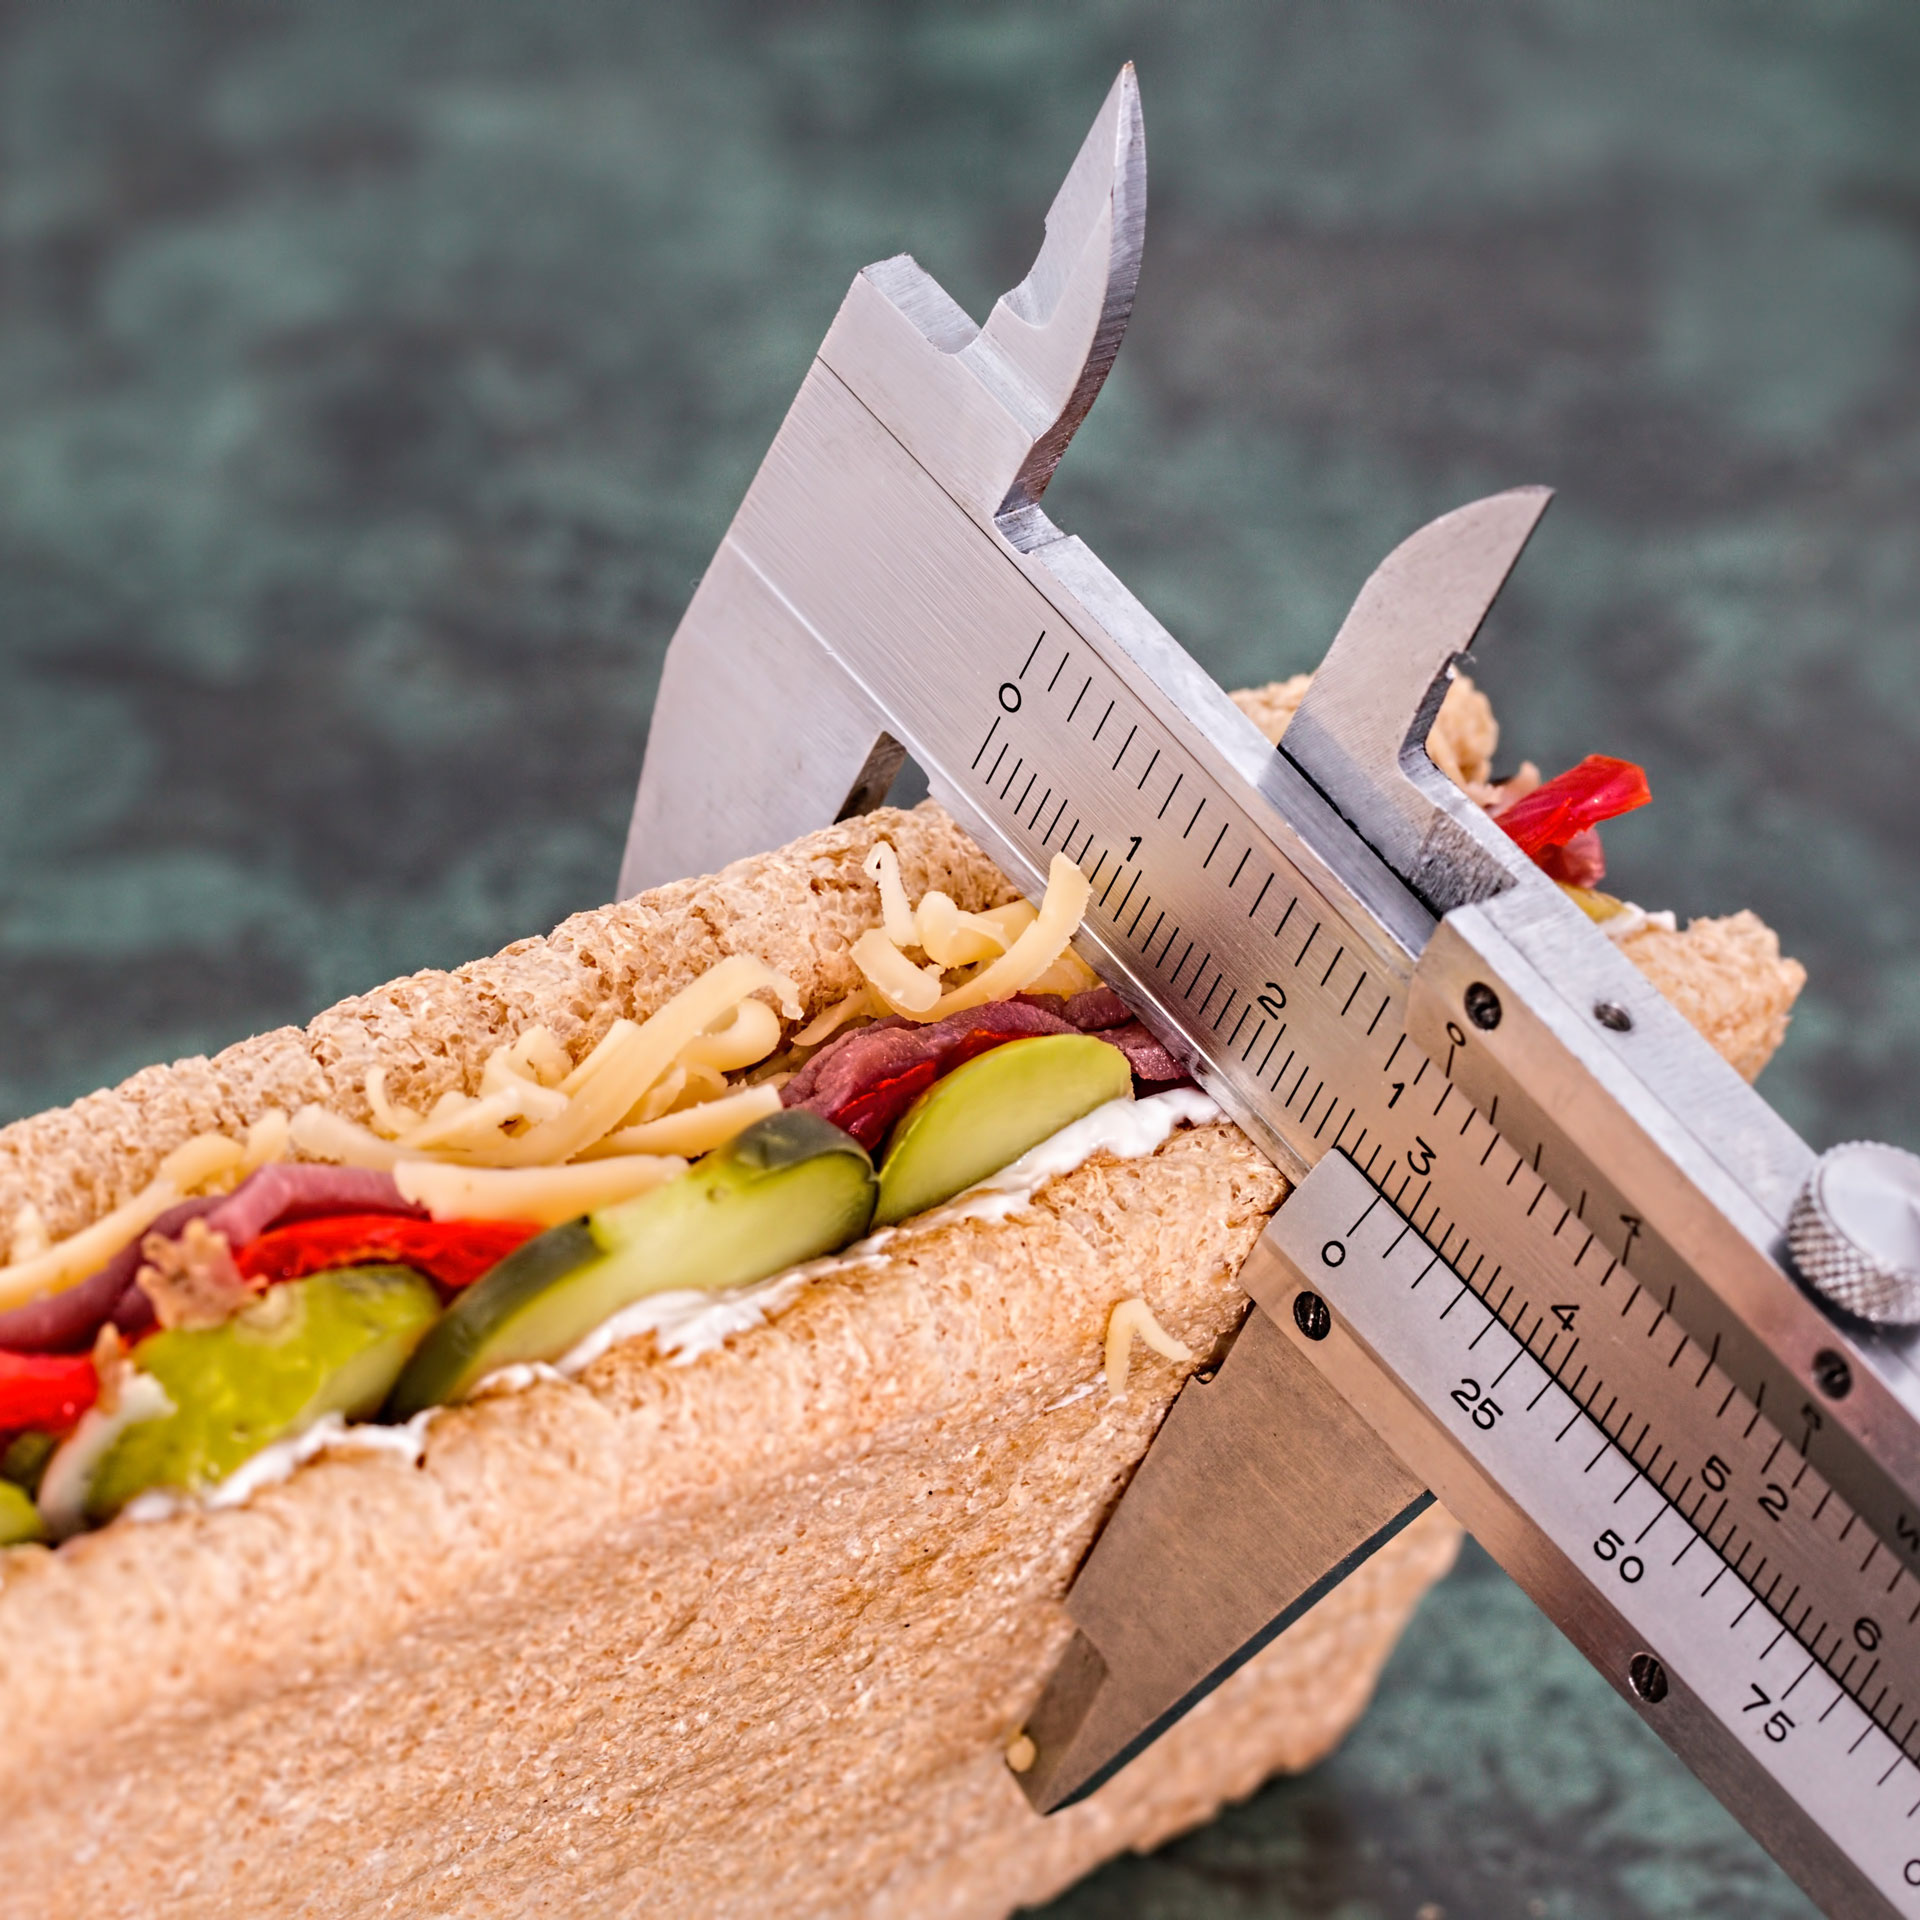 Statewide Opportunities For Linking Planning And: Weight Control Programs